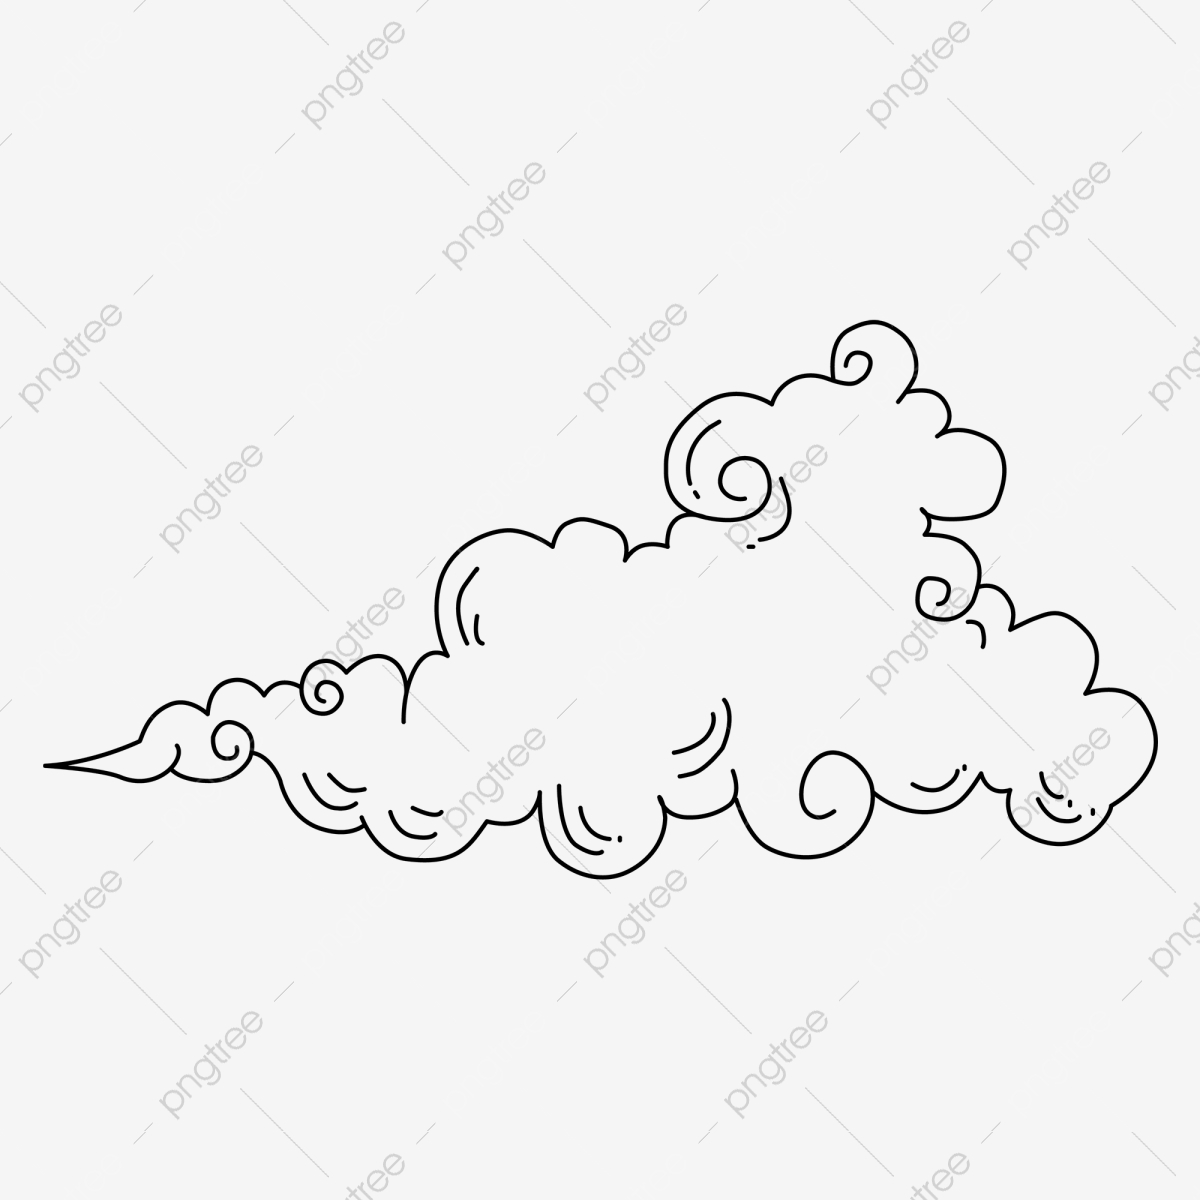 Stick Figure White Clouds Can Be Commercial Elements Stick Figure White Clouds Cloud Png And Vector With Transparent Background For Free Download